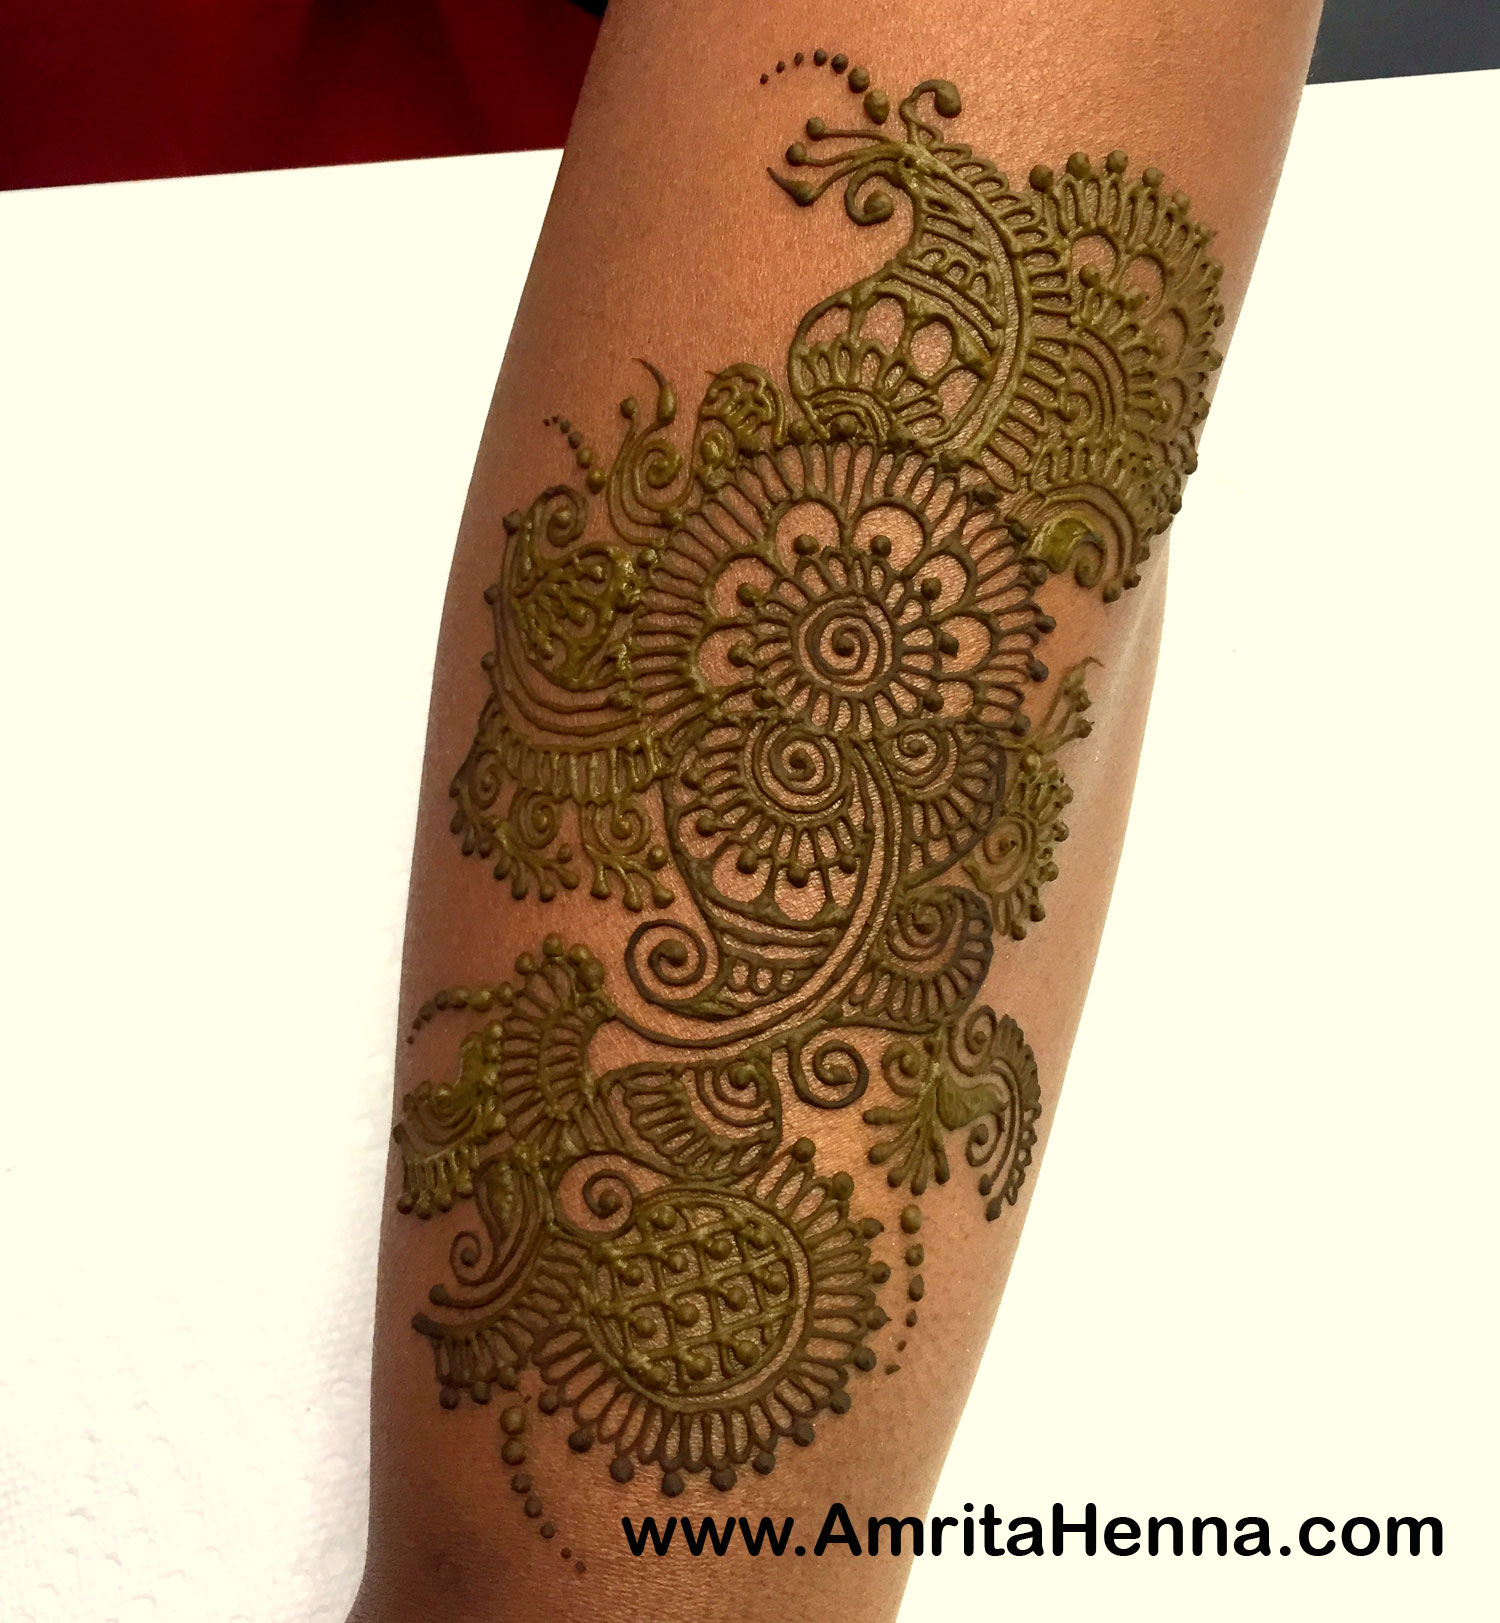 Top 5 Arm Henna Designs - Best 5 Henna Mehndi Designs for the Arms - Top 5 Latest Mehendi Design Ideas for Arms - 5 Most Popular Arm Henna Tattoo Designs - Top 5 Stunning and Beautiful Henna Mehndi Designs for Arms - 5 Coolest Arm Henna Tattoo Designs - 5 Amazing Mehendi Designs for your Arms